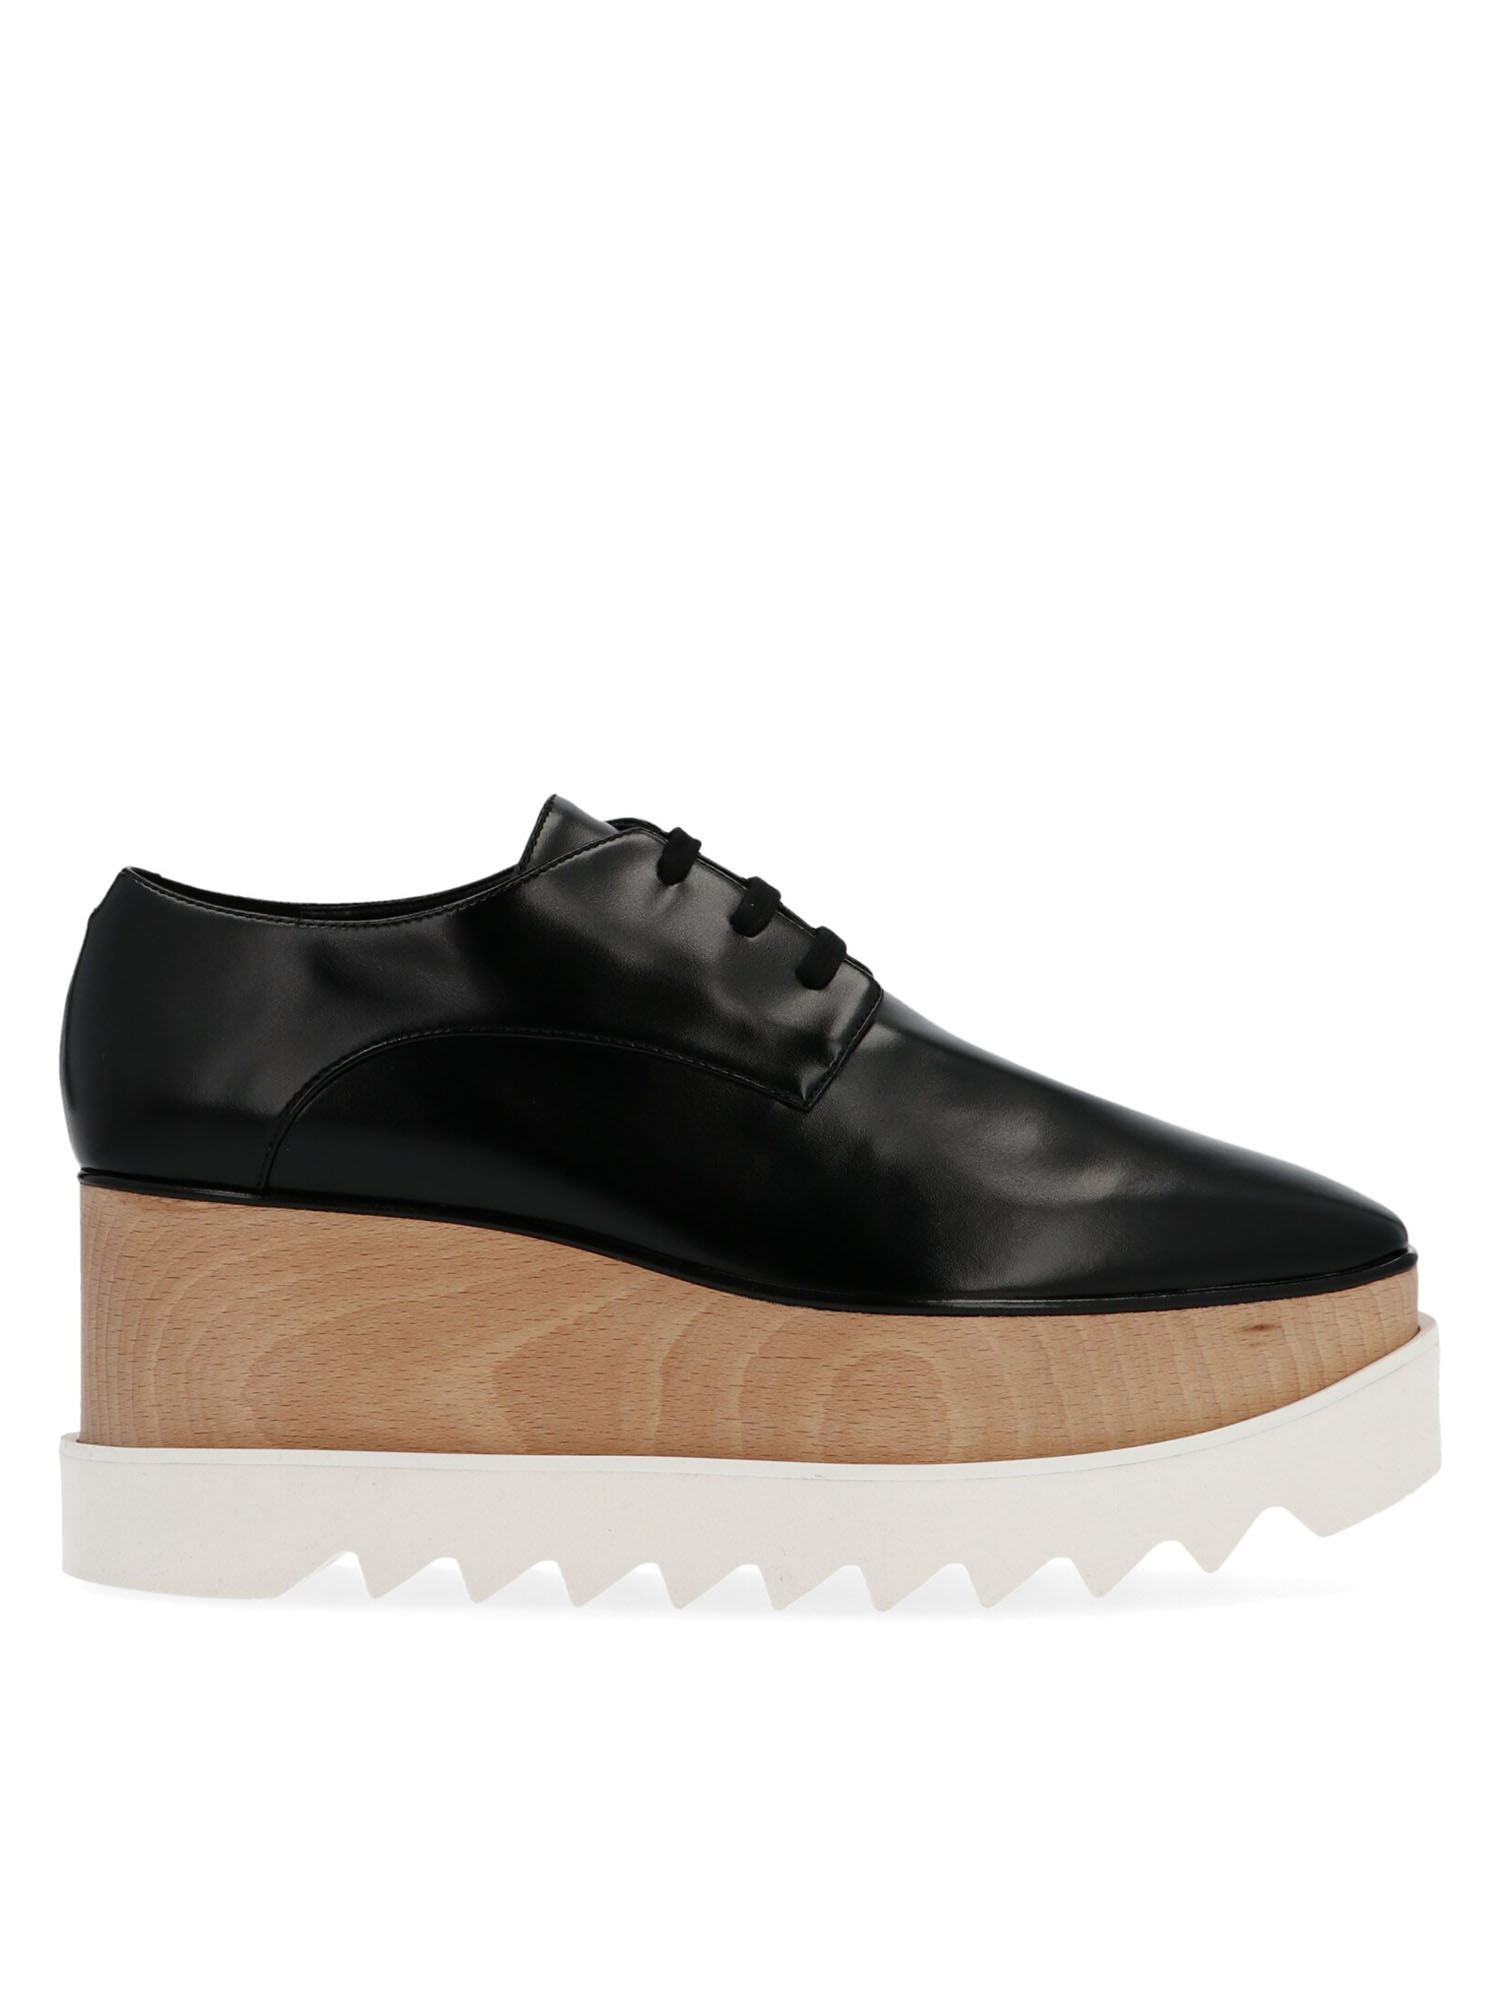 Stella Mccartney STELLA MCCARTNEY ELYSE PLATFORM SHOES IN BLACK